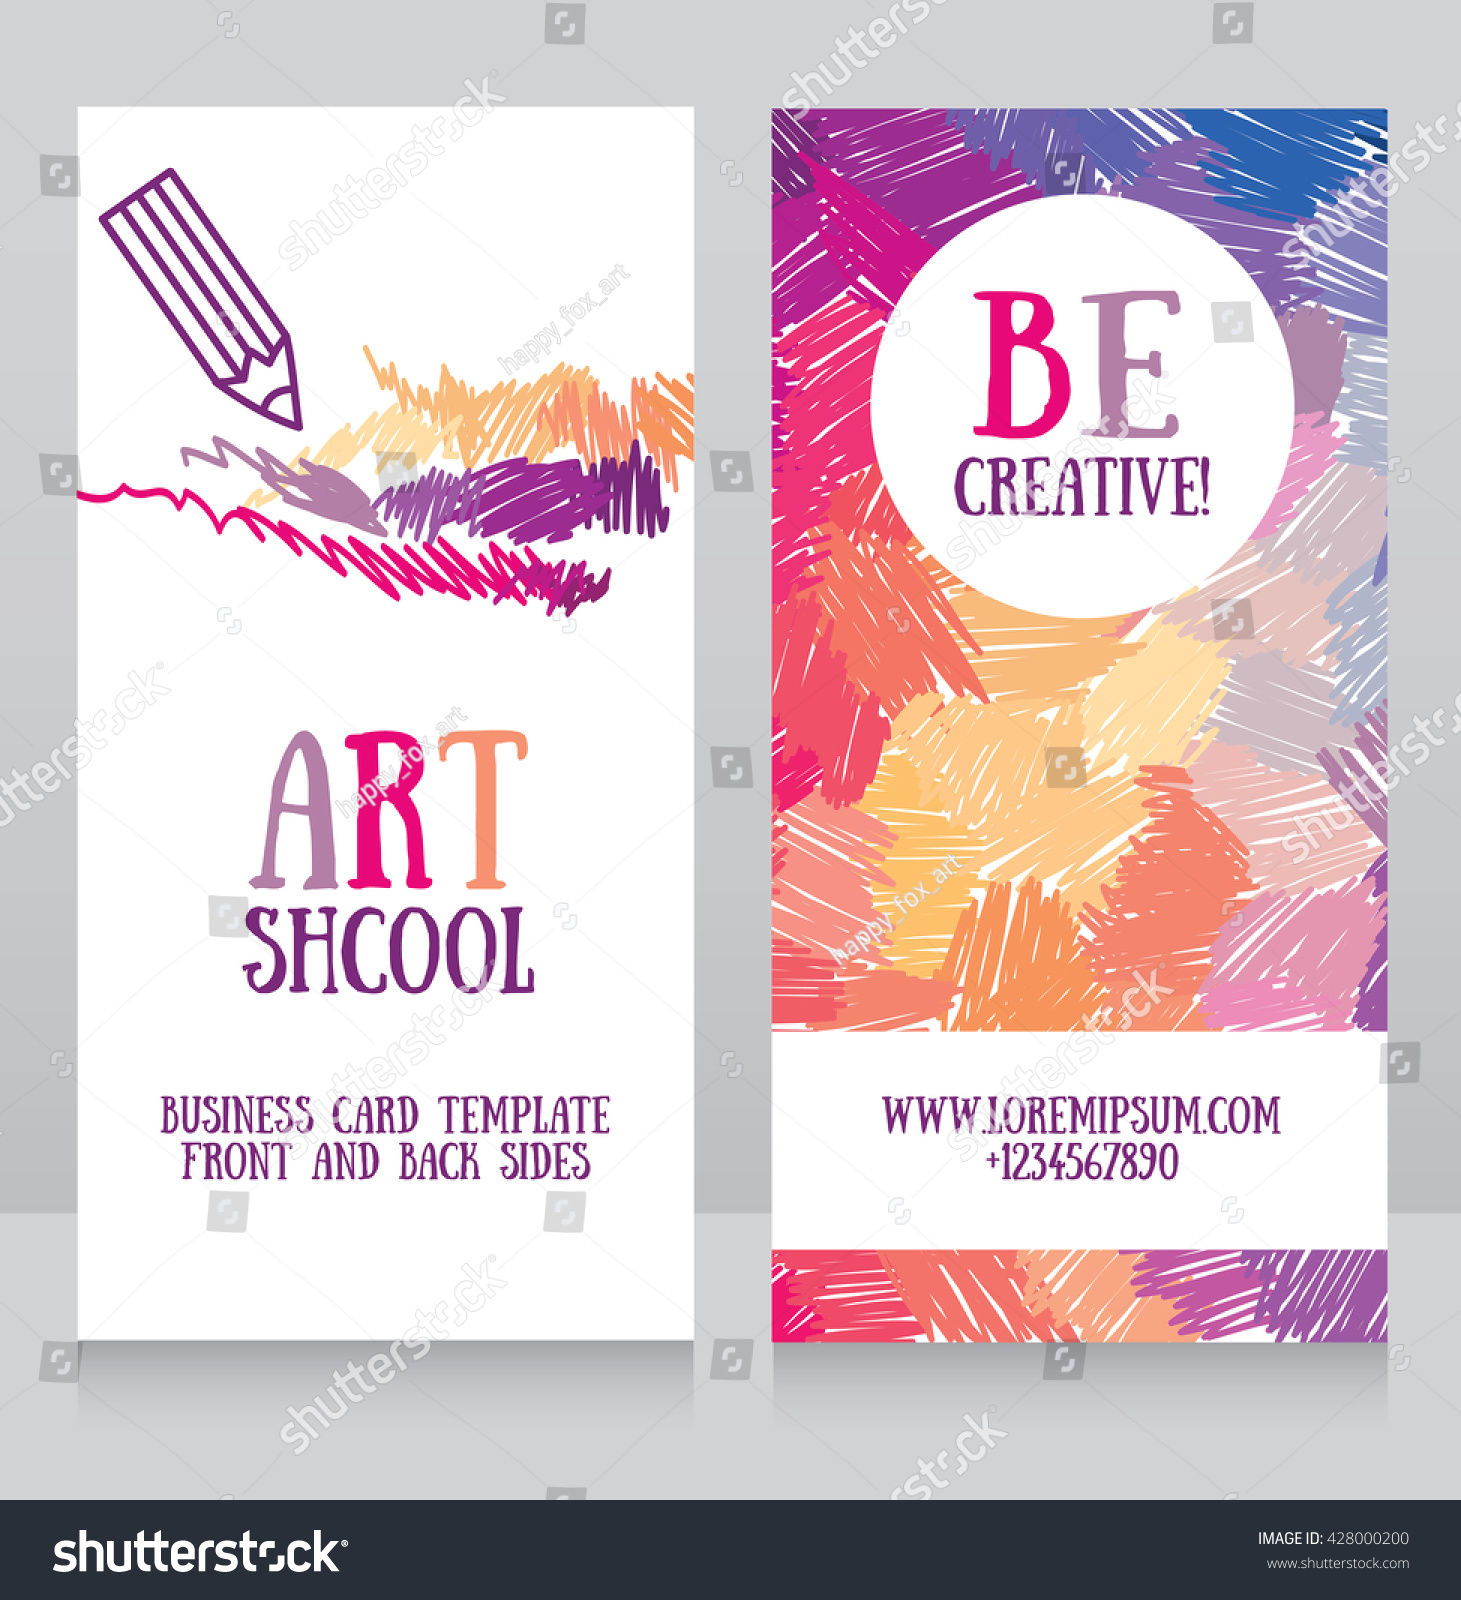 Business Cards Template Art School Can Stock Vector 428000200 ...